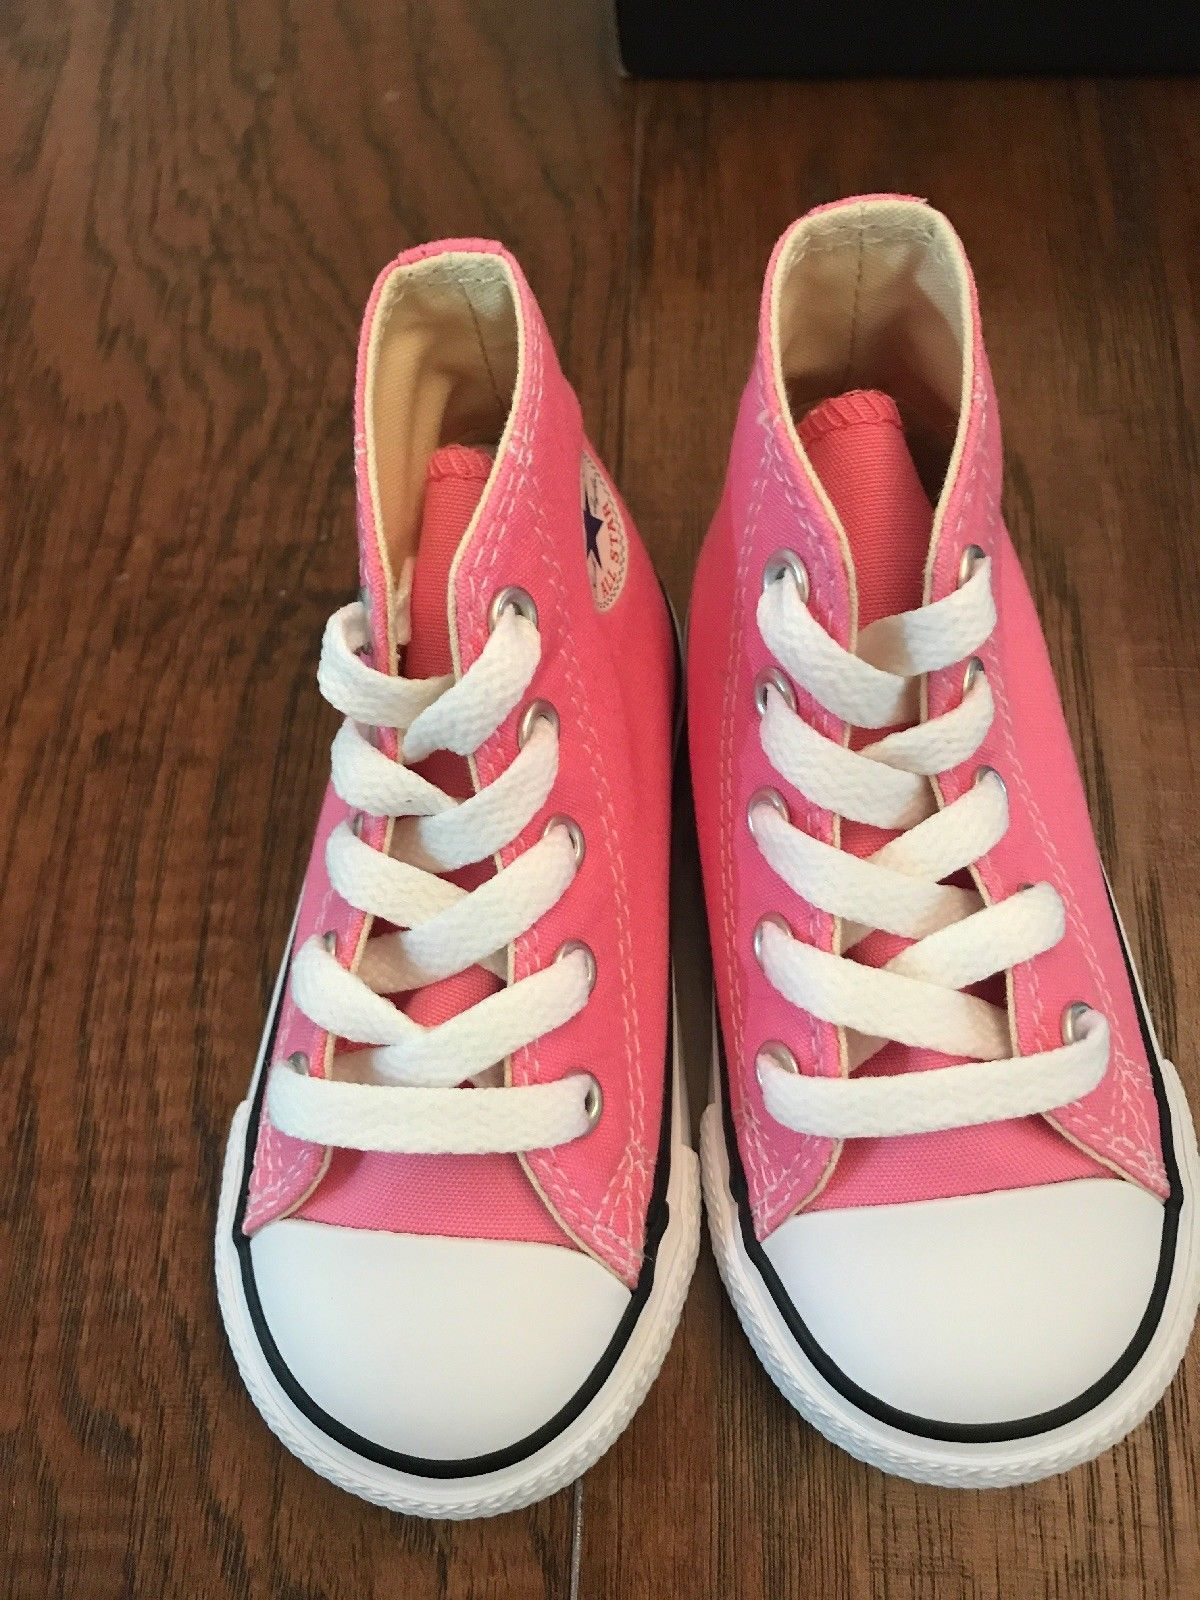 1f73ad71b37f NEW Infant Toddler Converse Chuck Taylor All Star Hi High Top Pink 4 6 8 9